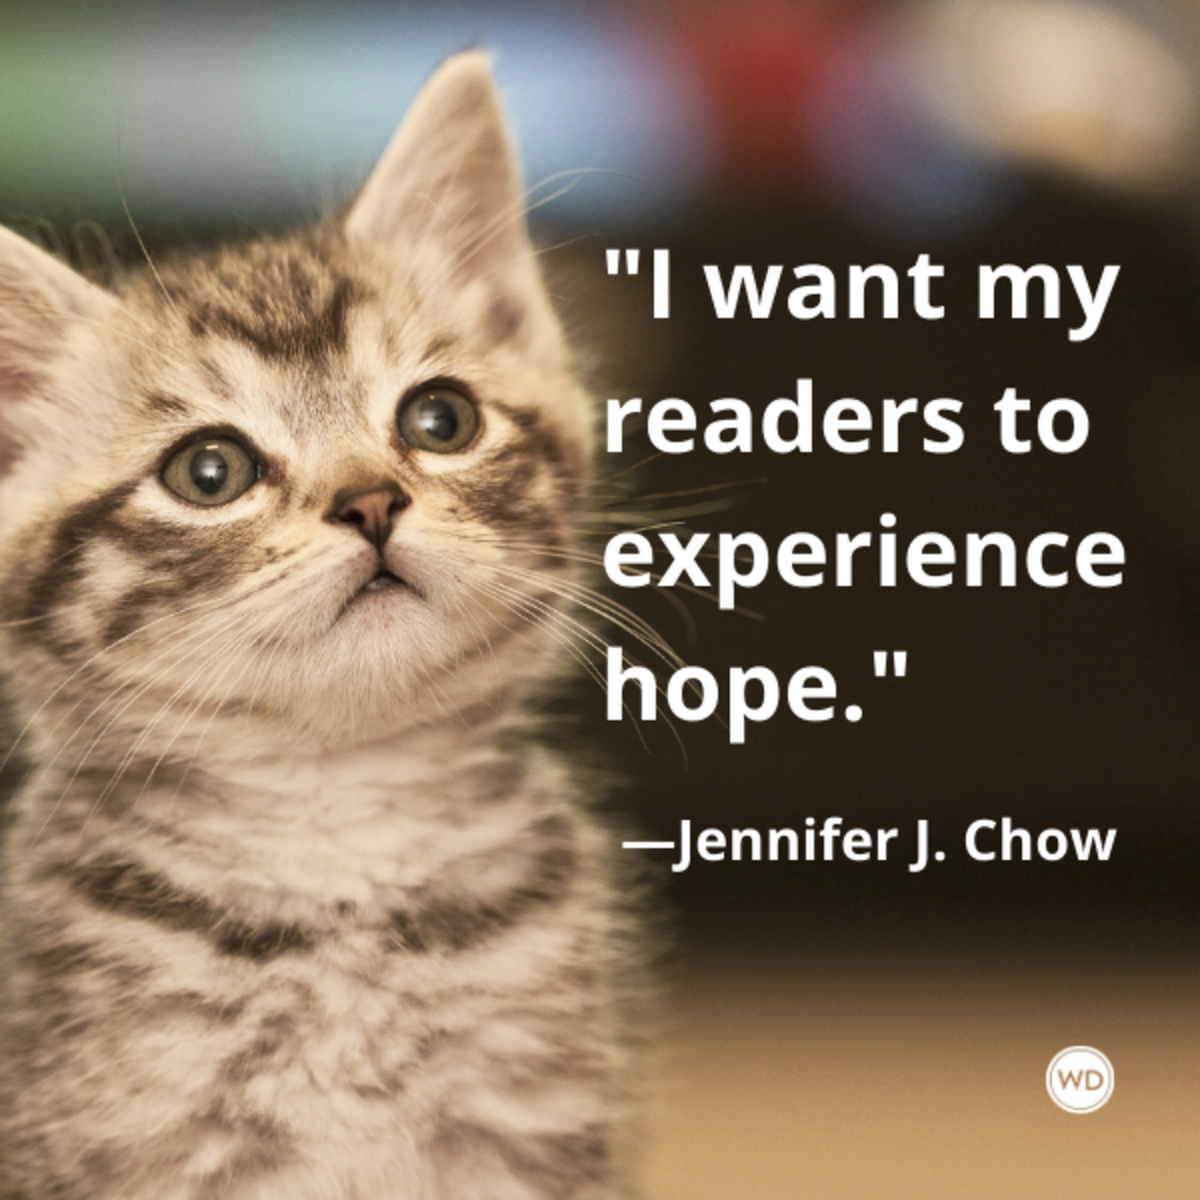 jennifer_j_chow_quotes_i_want_my_readers_to_experience_hope_sassy_cat_mysteries